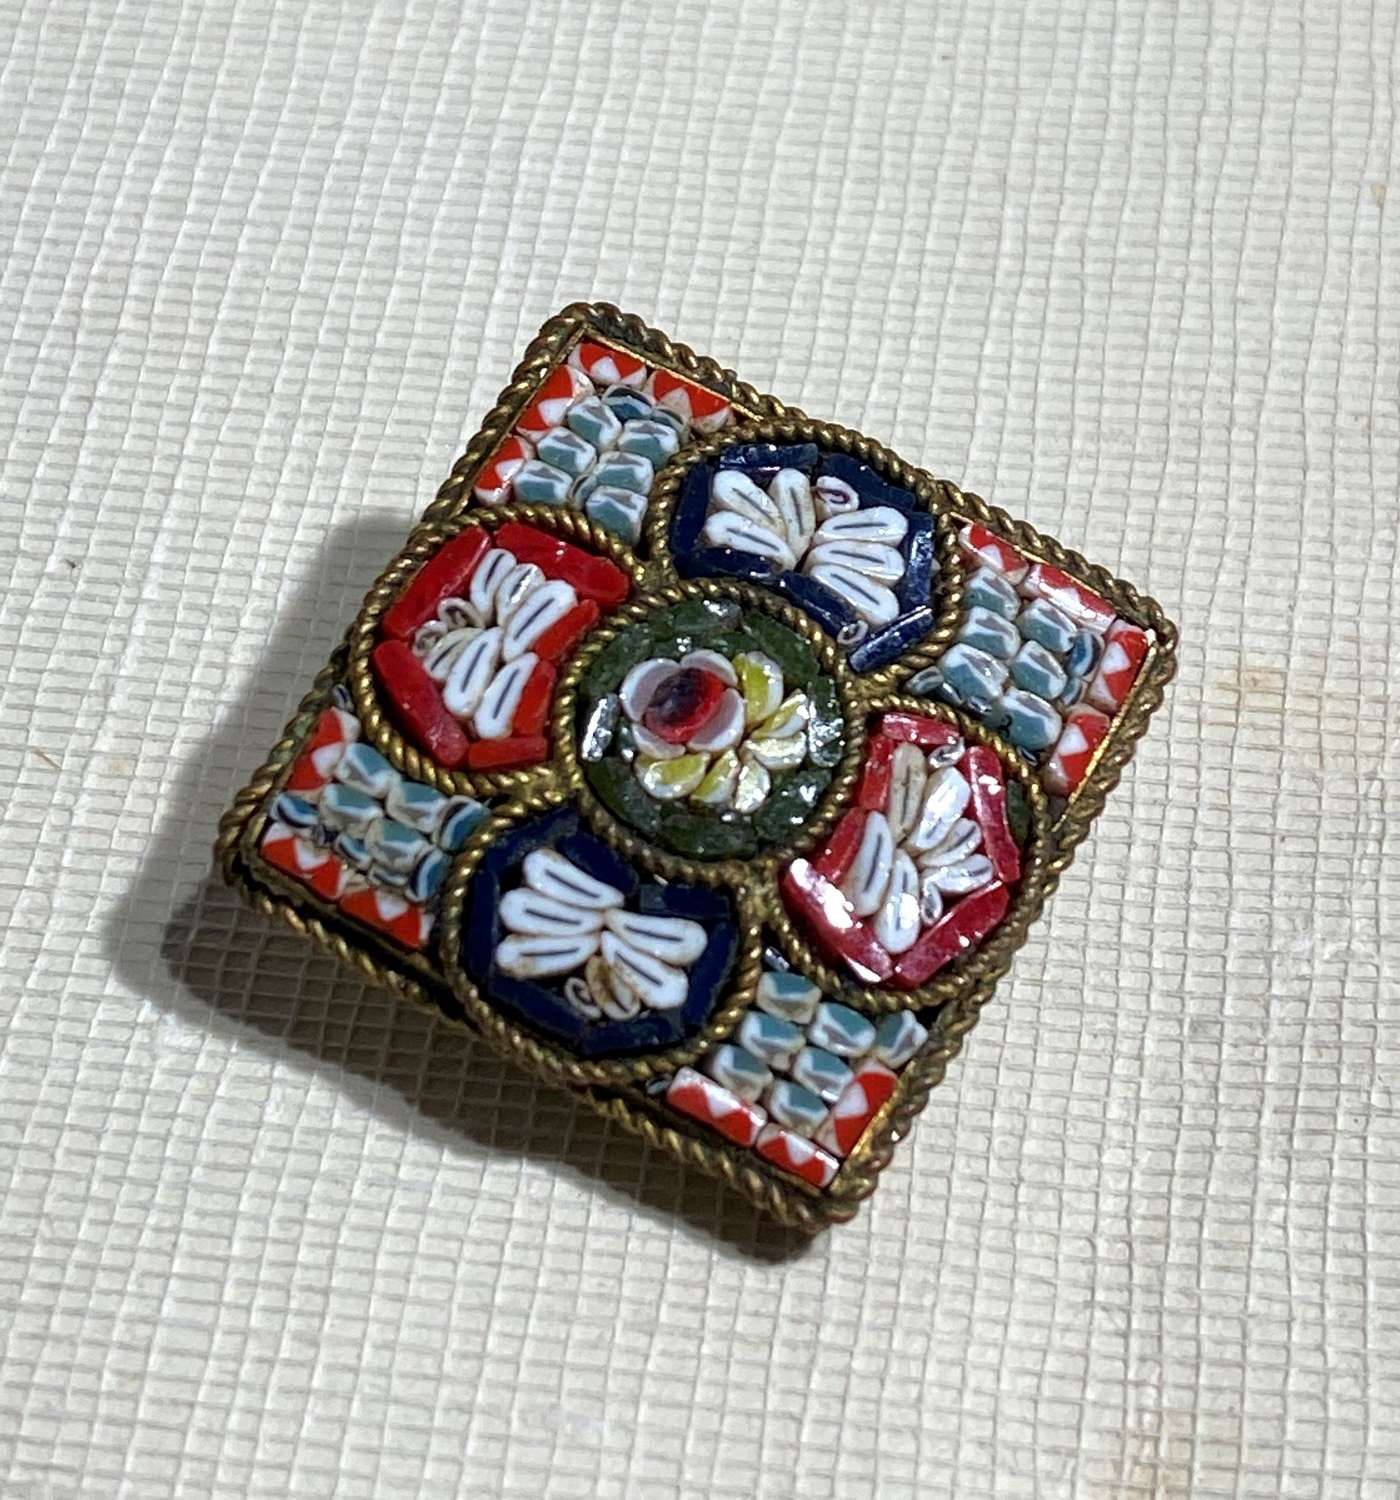 Antique Micro Mosaic Brooch With Dragonflies